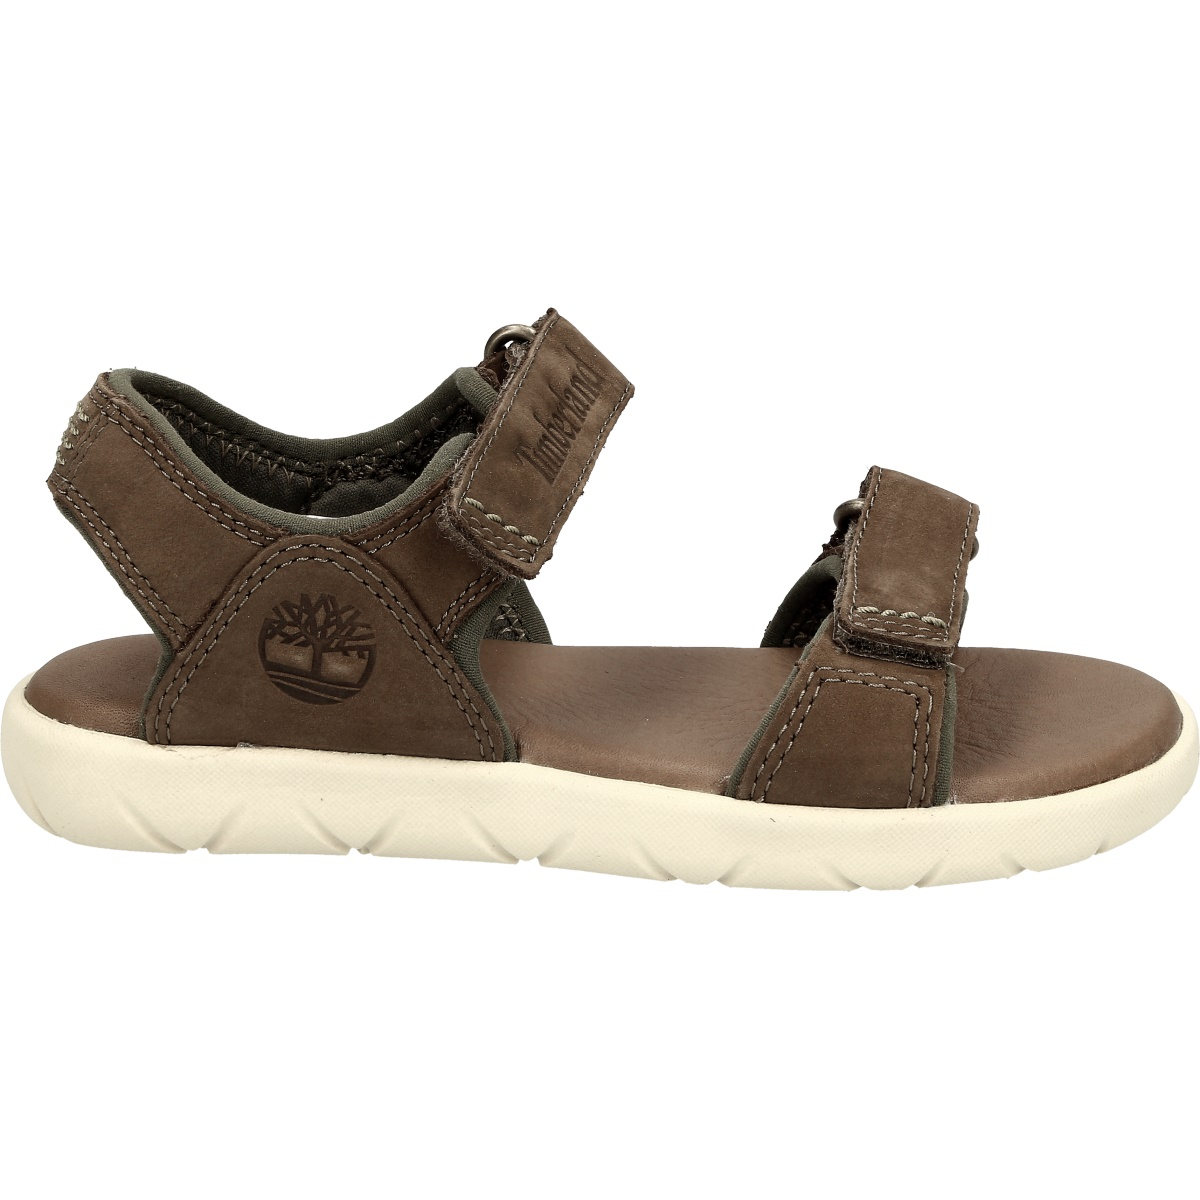 d51cbab8635 Timberland #A1RAG Children's shoes Sandals buy shoes at our Schuhe ...